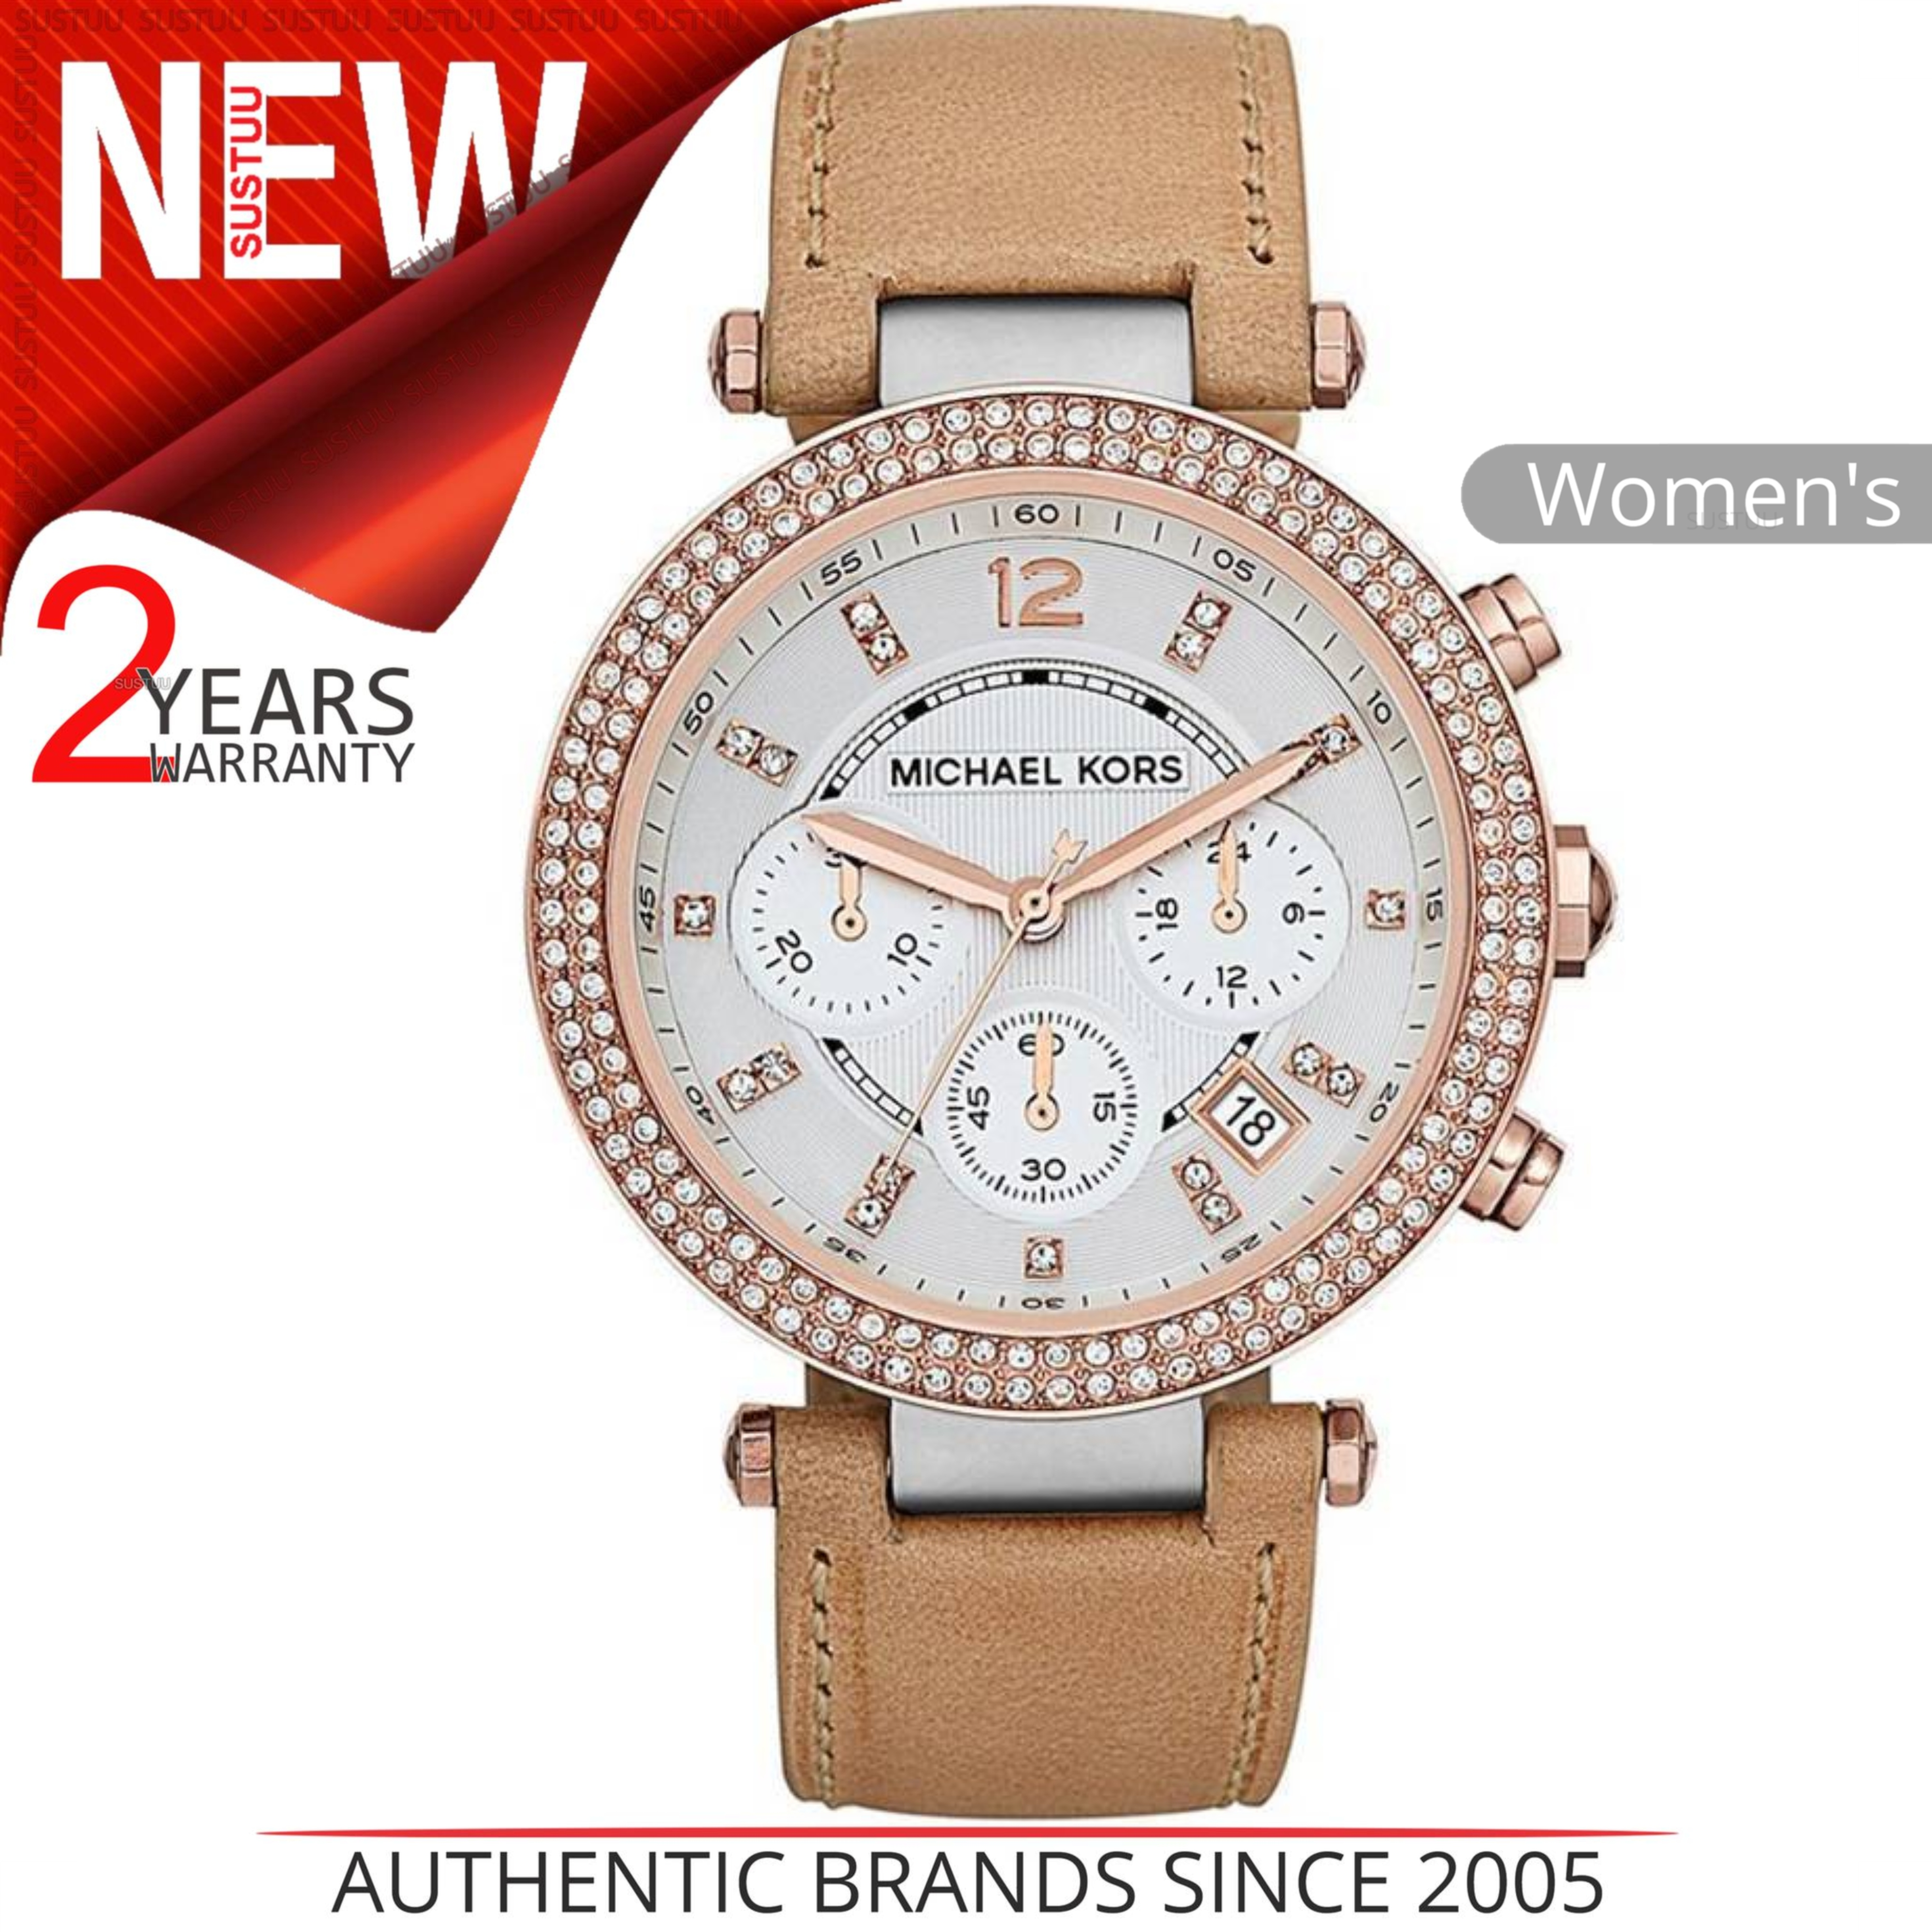 7585d1bf0 Details about Michael Kors Parker Chronograph Tan Leather Beige Calfskin  Ladies Watch MK5633